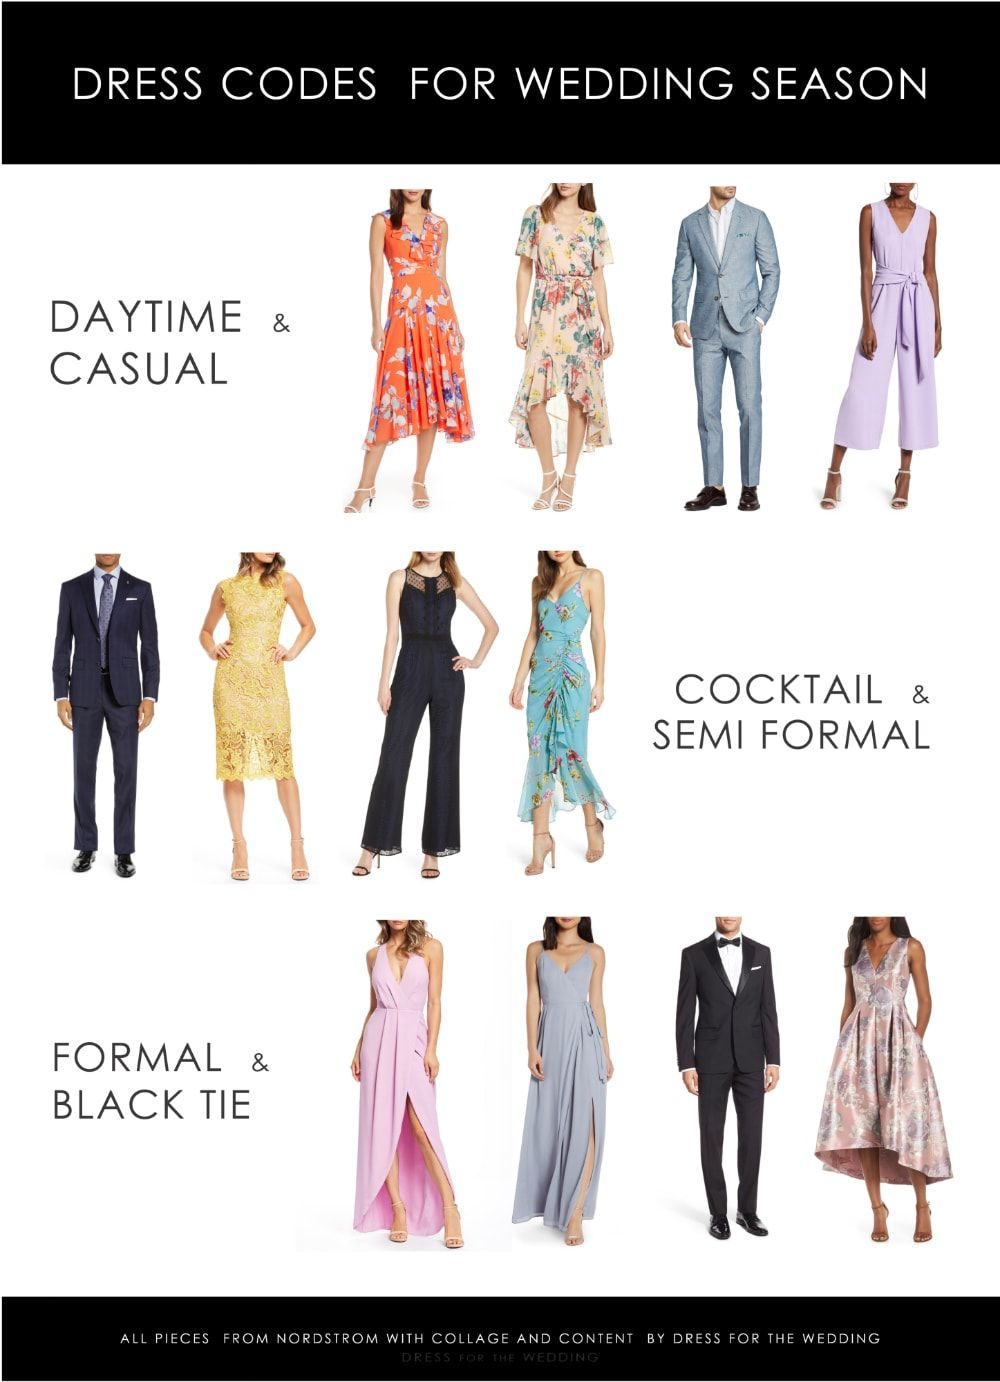 Getting Ready For The 2019 Wedding Season With Nordstrom Casual